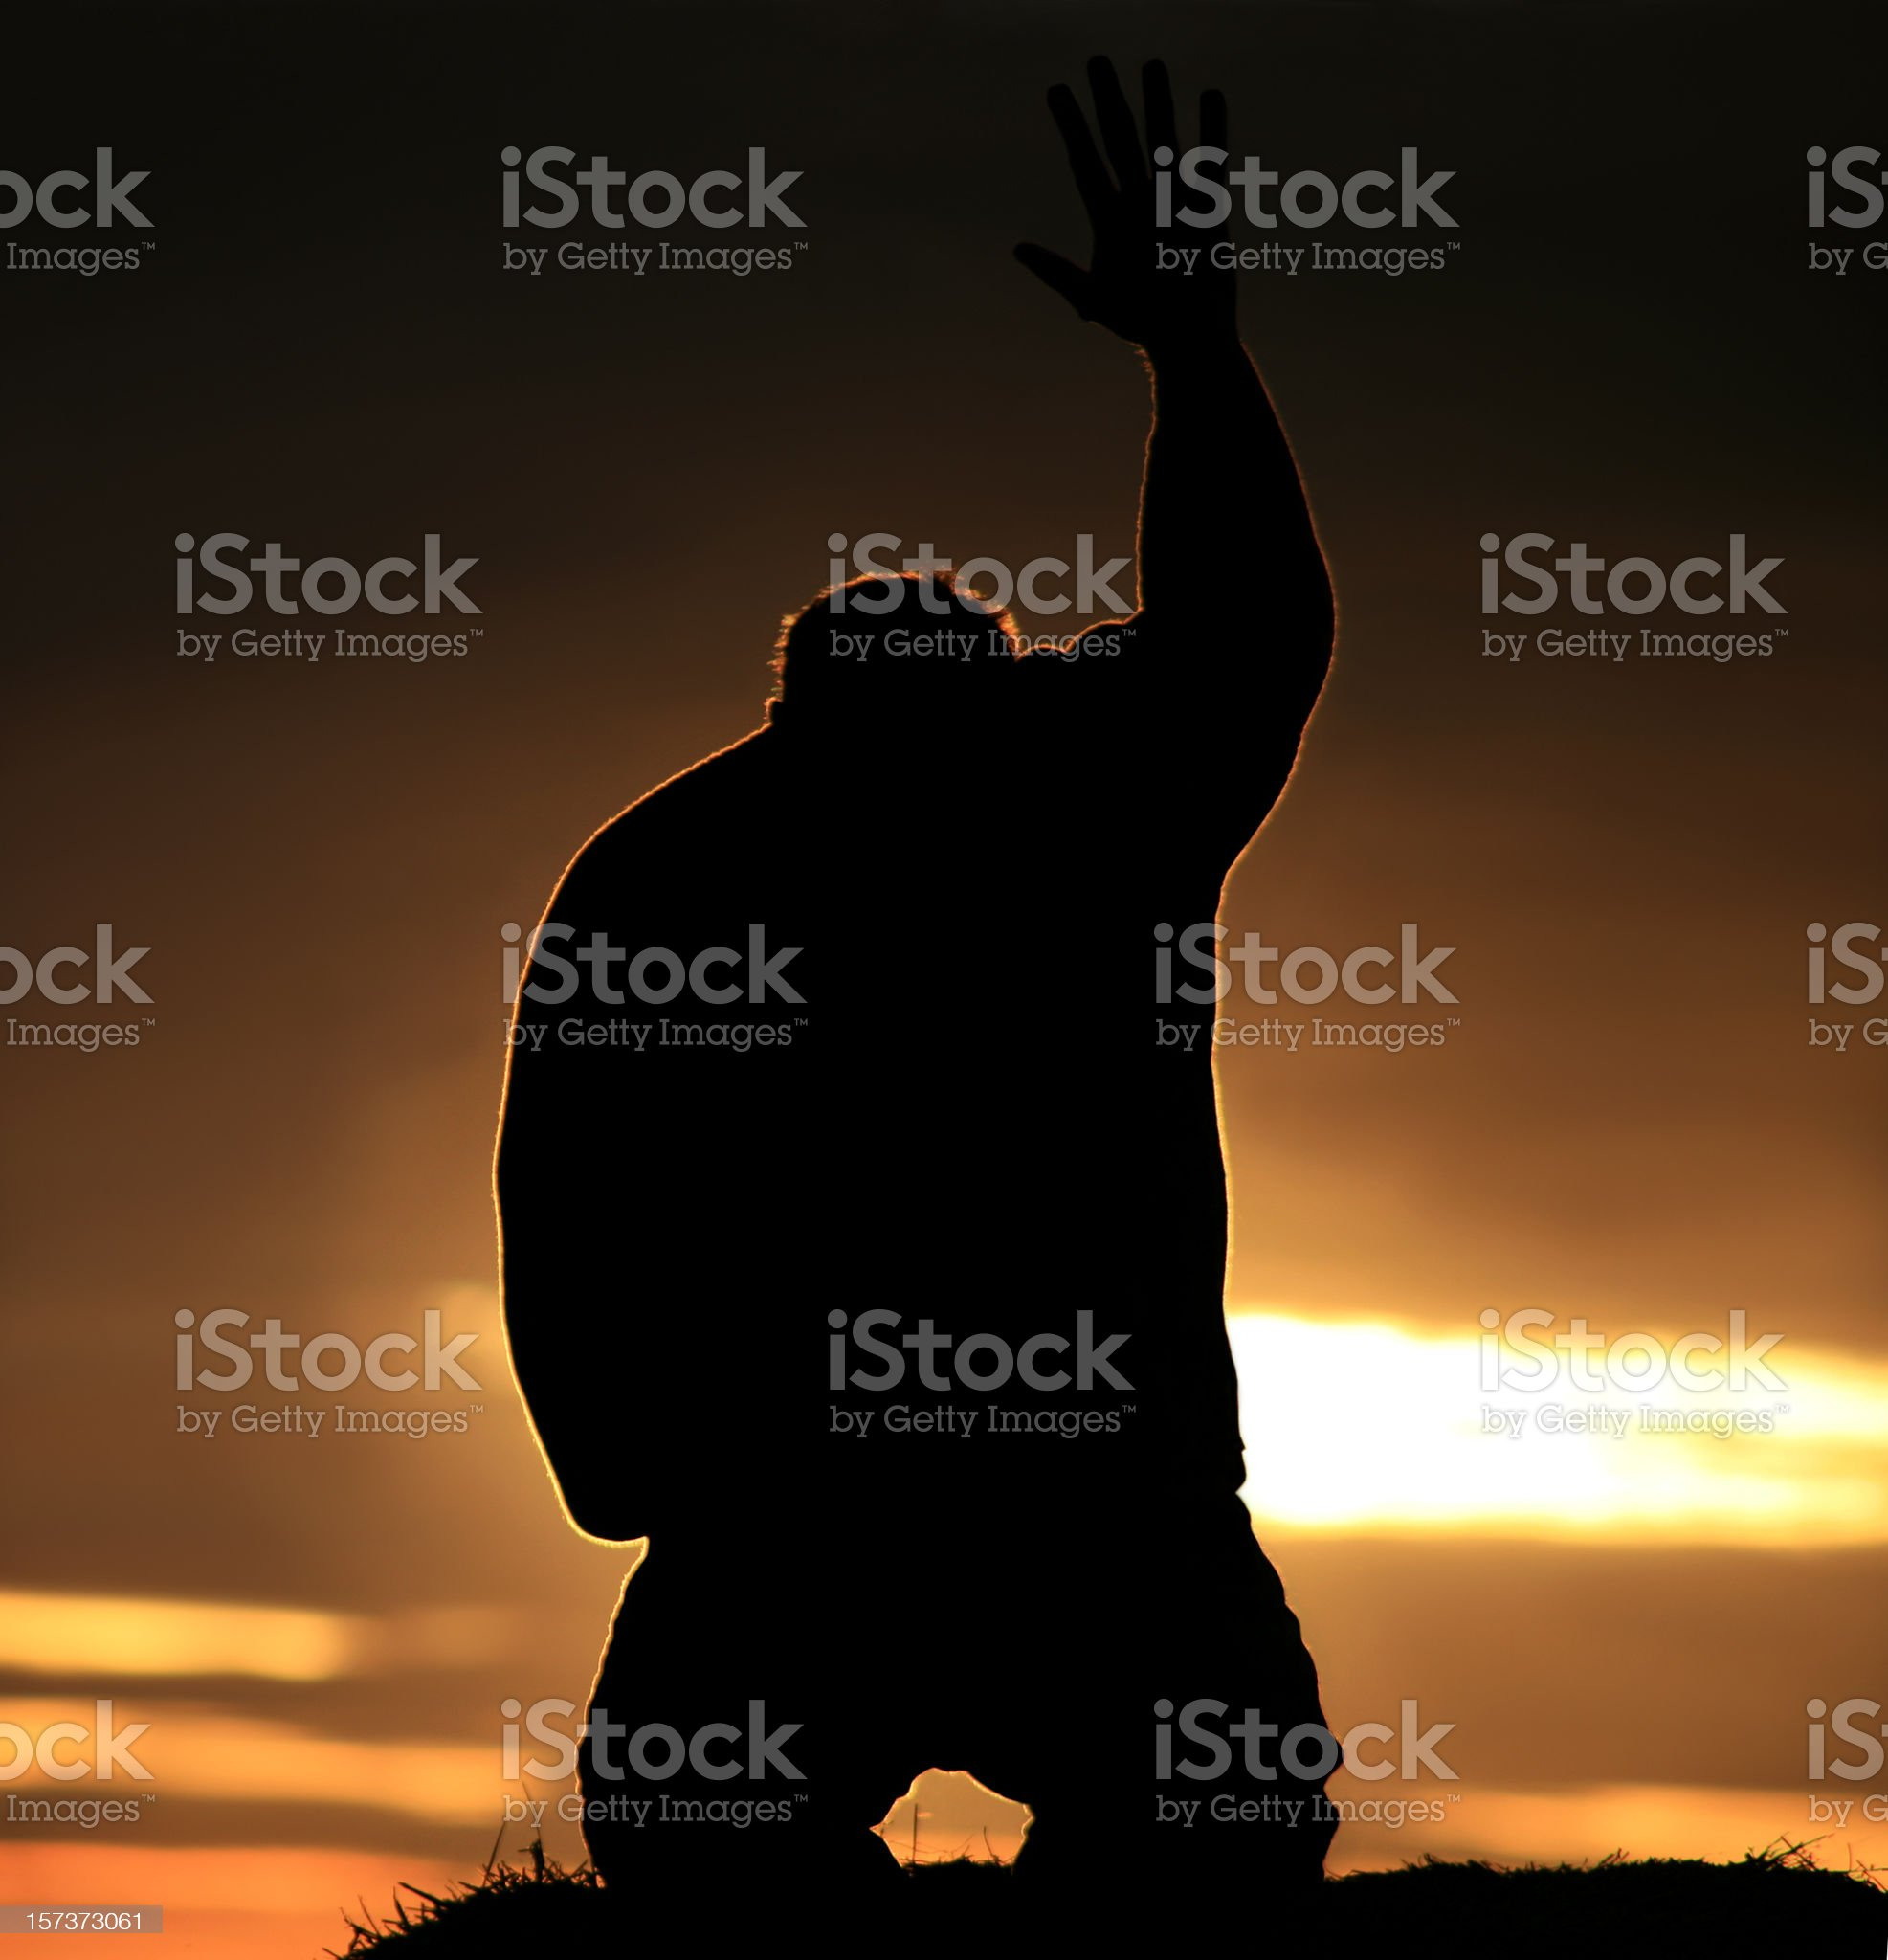 Hand to Heaven in Praise and Worship royalty-free stock photo